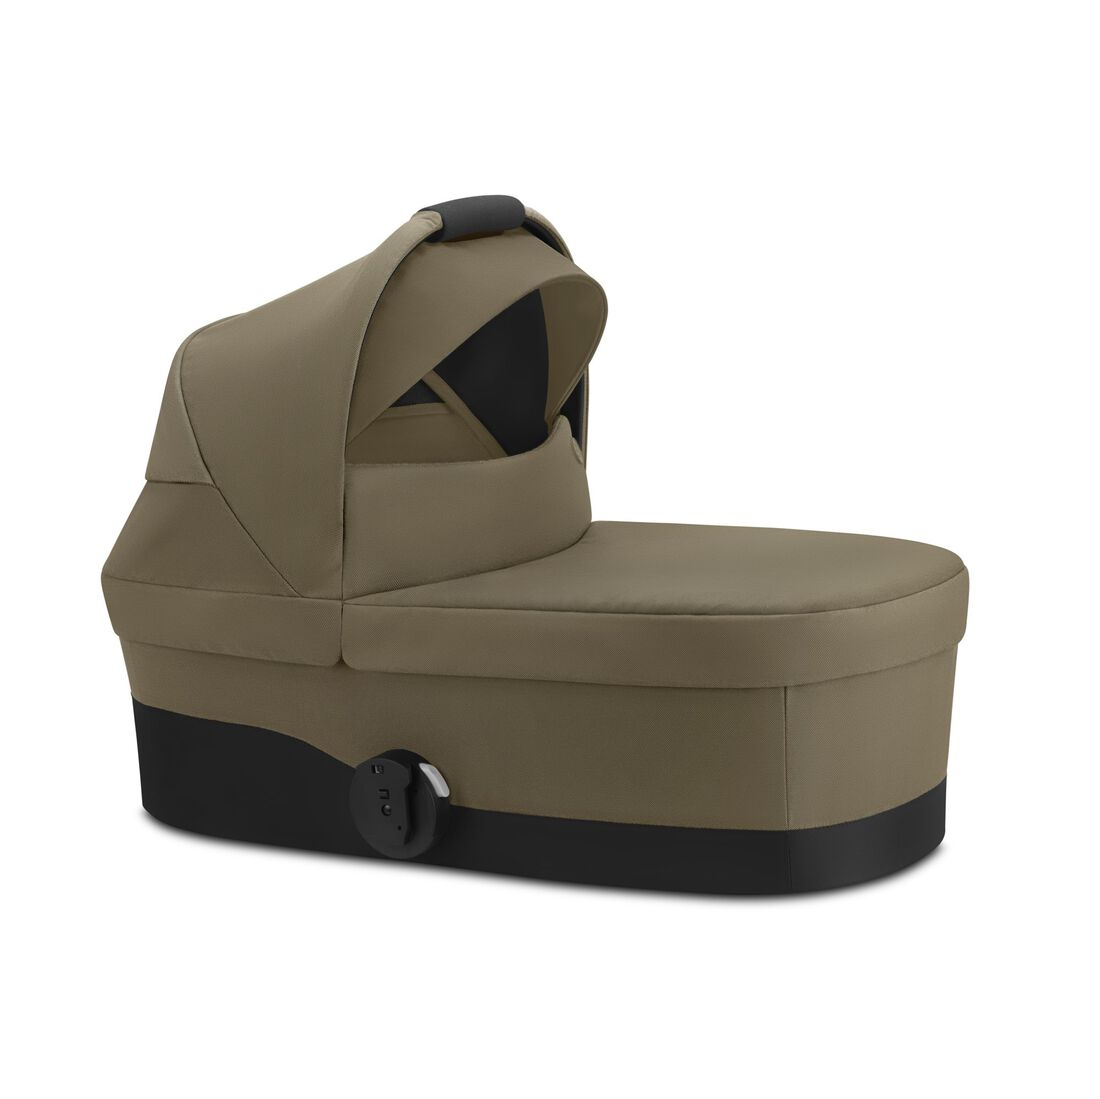 CYBEX Cot S - Classic Beige in Classic Beige large image number 2